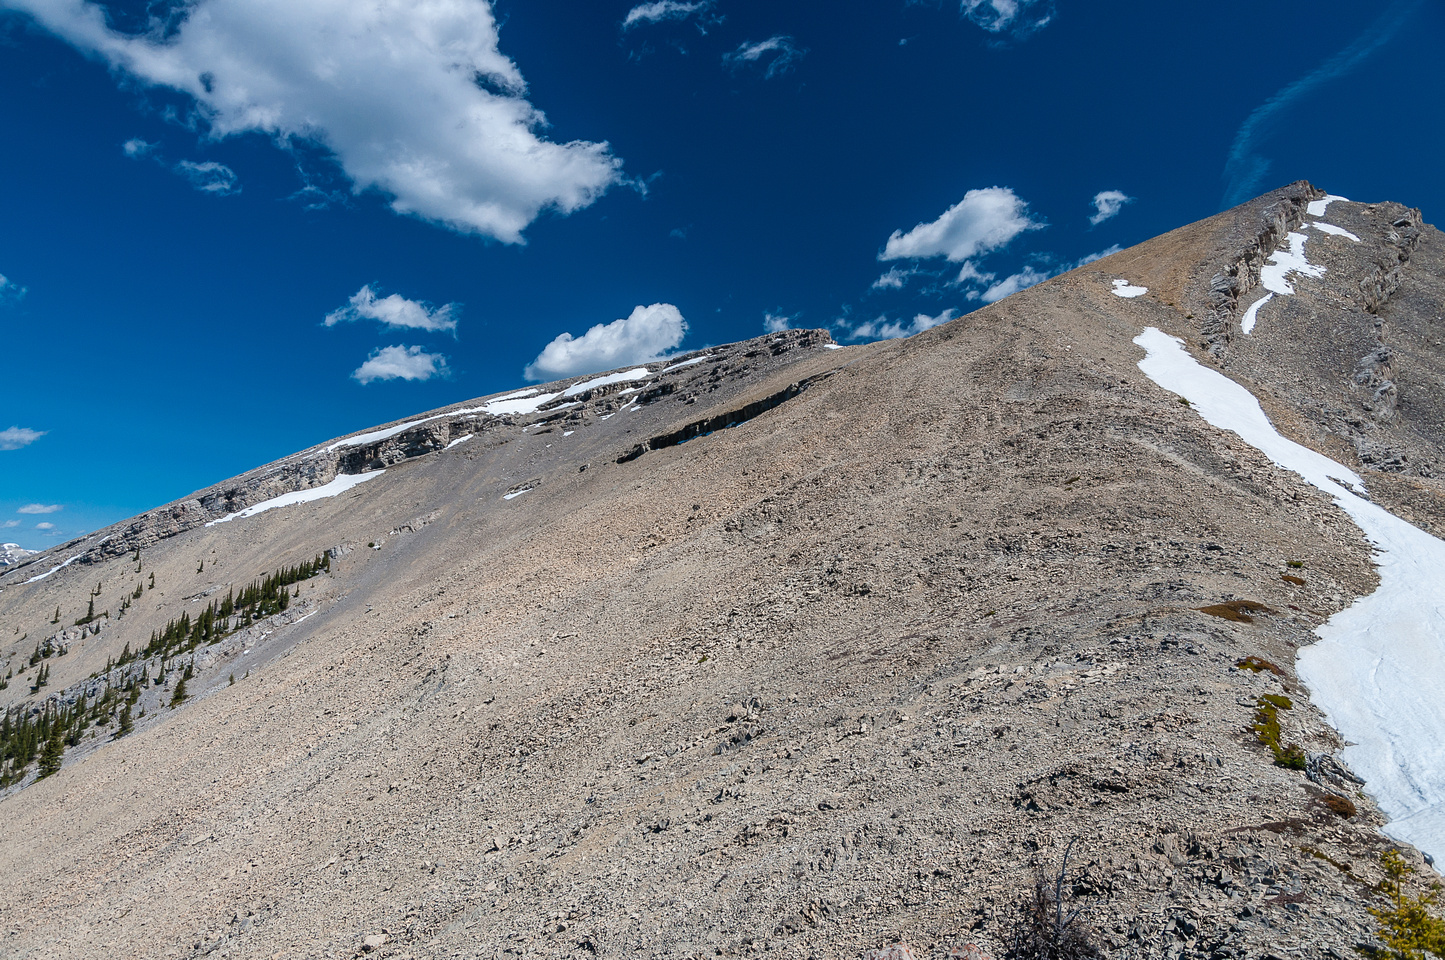 Continuing up the south ridge of Mount Livingstone.